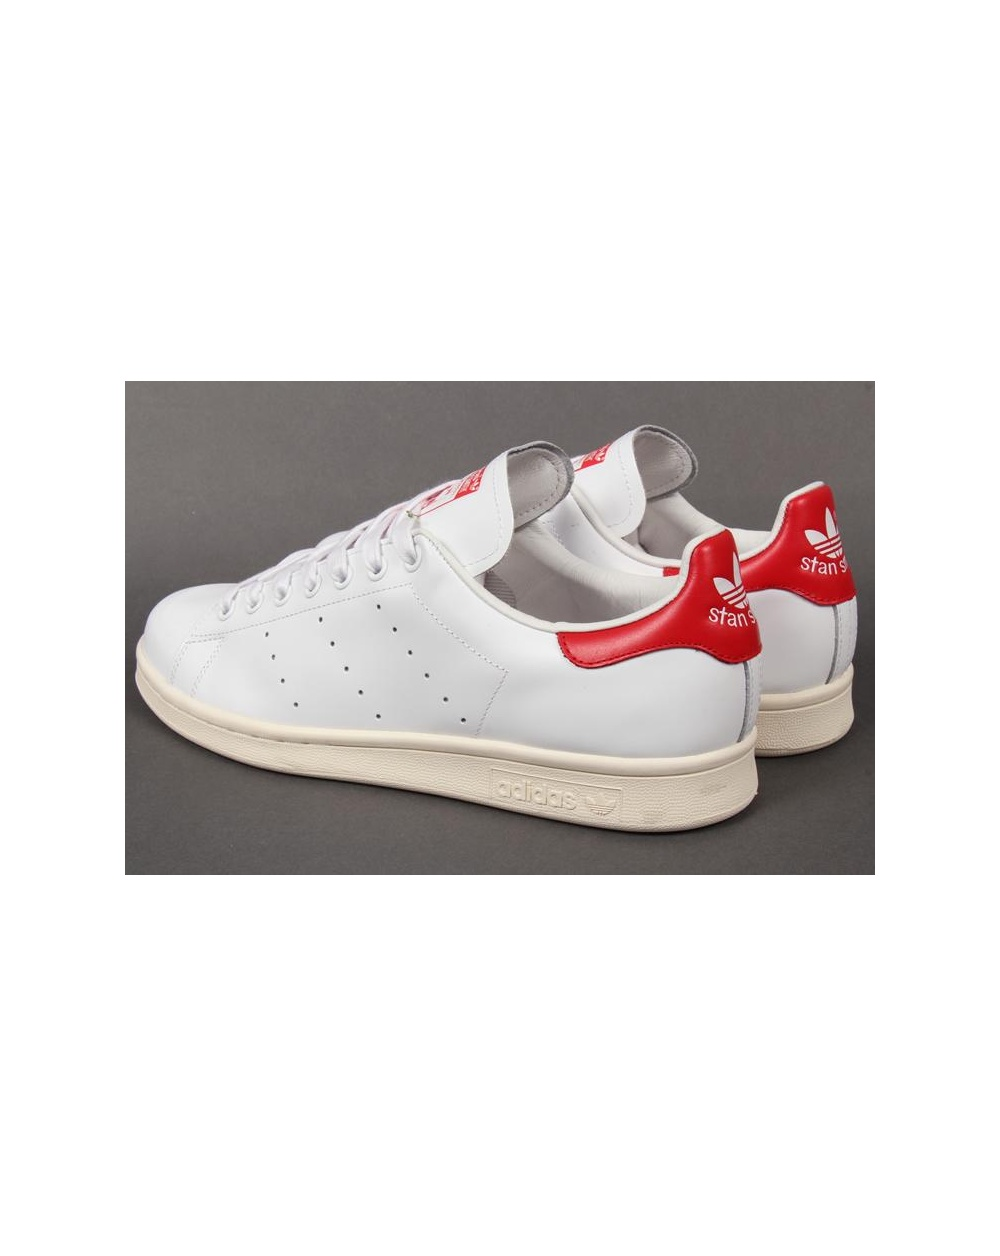 adidas stan smith trainers white red originals stan smith 2. Black Bedroom Furniture Sets. Home Design Ideas